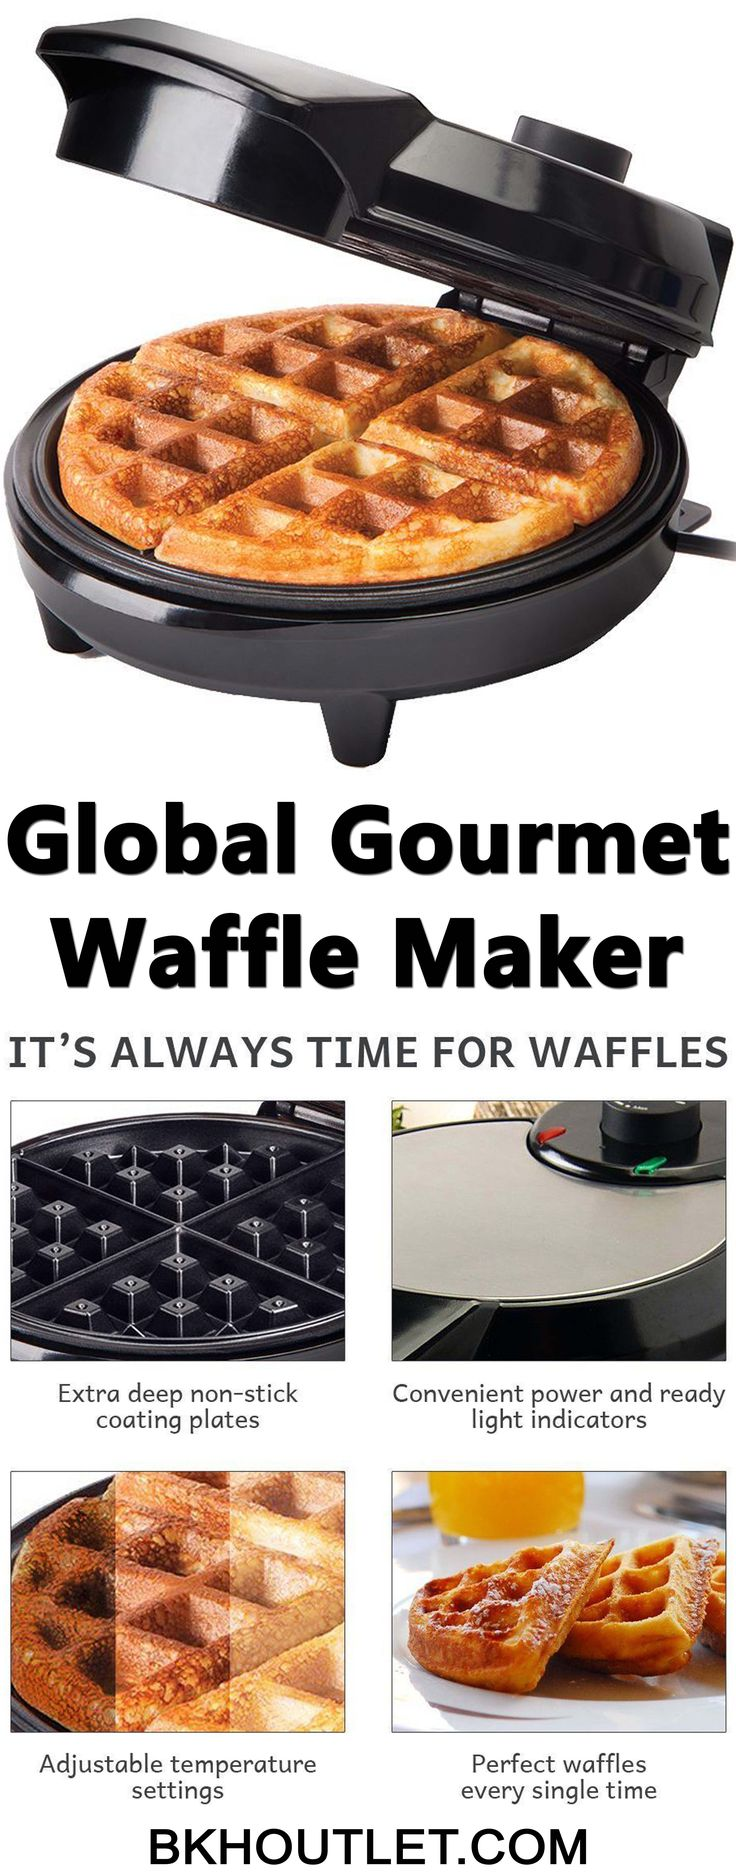 TRADITIONAL AMERICAN WAFFLES BY GLOBAL GOURMET Everyone likes waffles. Especially, when it comes to American waffles. So why not making them at home? │kitchen appliances │blender │coffee maker │hot plates │kettles │mixers │slow cookers │steamers │toasters │kitchen tools │pressure cooker #kitchenappliances #blender #coffeemaker #hotplates #kettles #mixers #slowcookers #steamers #toasters #kitchentools #pressurecooker